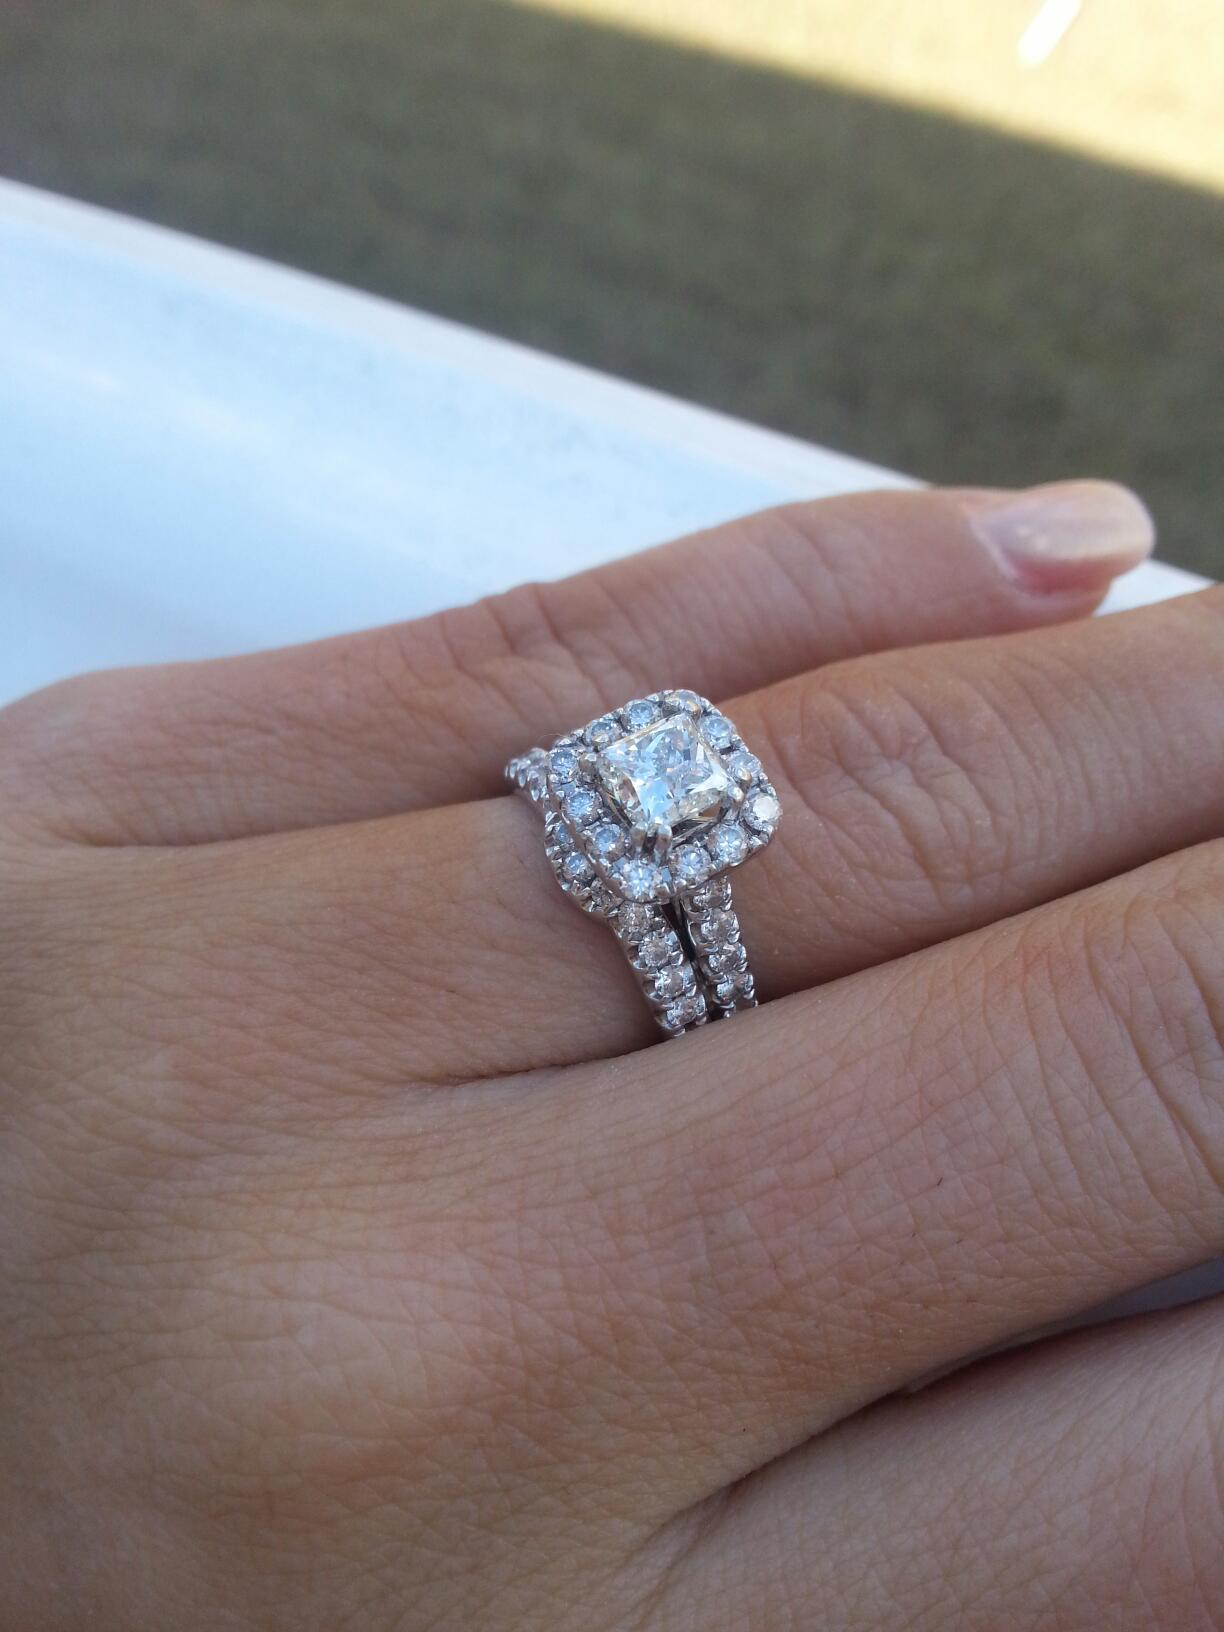 changing original ring set neil lane wedding bands I lost my first ring then hubby picked out a Neil Lane princess cut halo wedding set that really wasn t my style although I do still have it